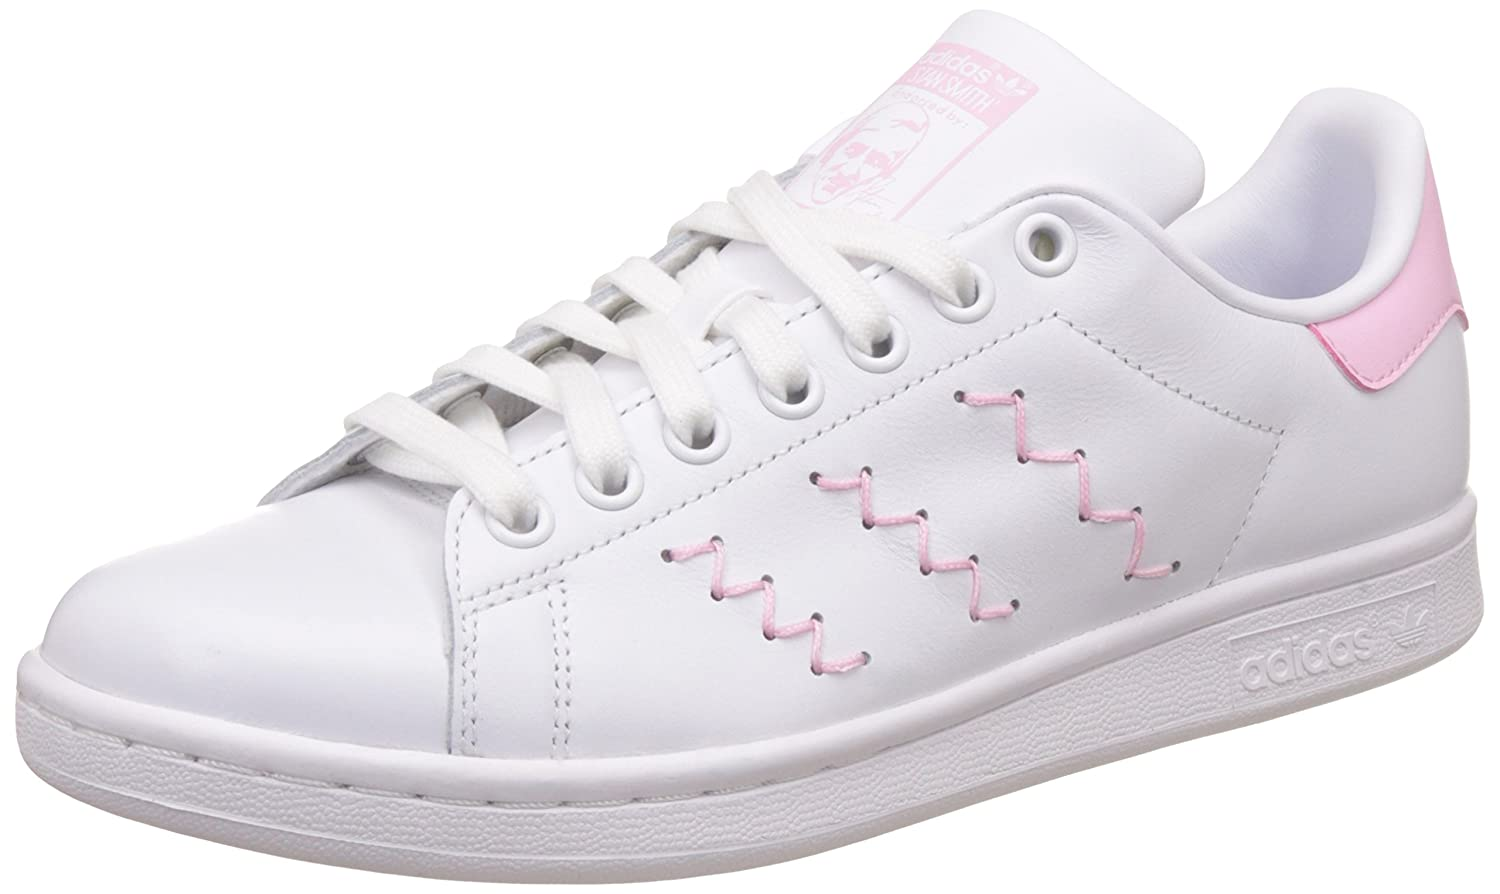 Adidas Women's Stan Smith W Leather Sneakers